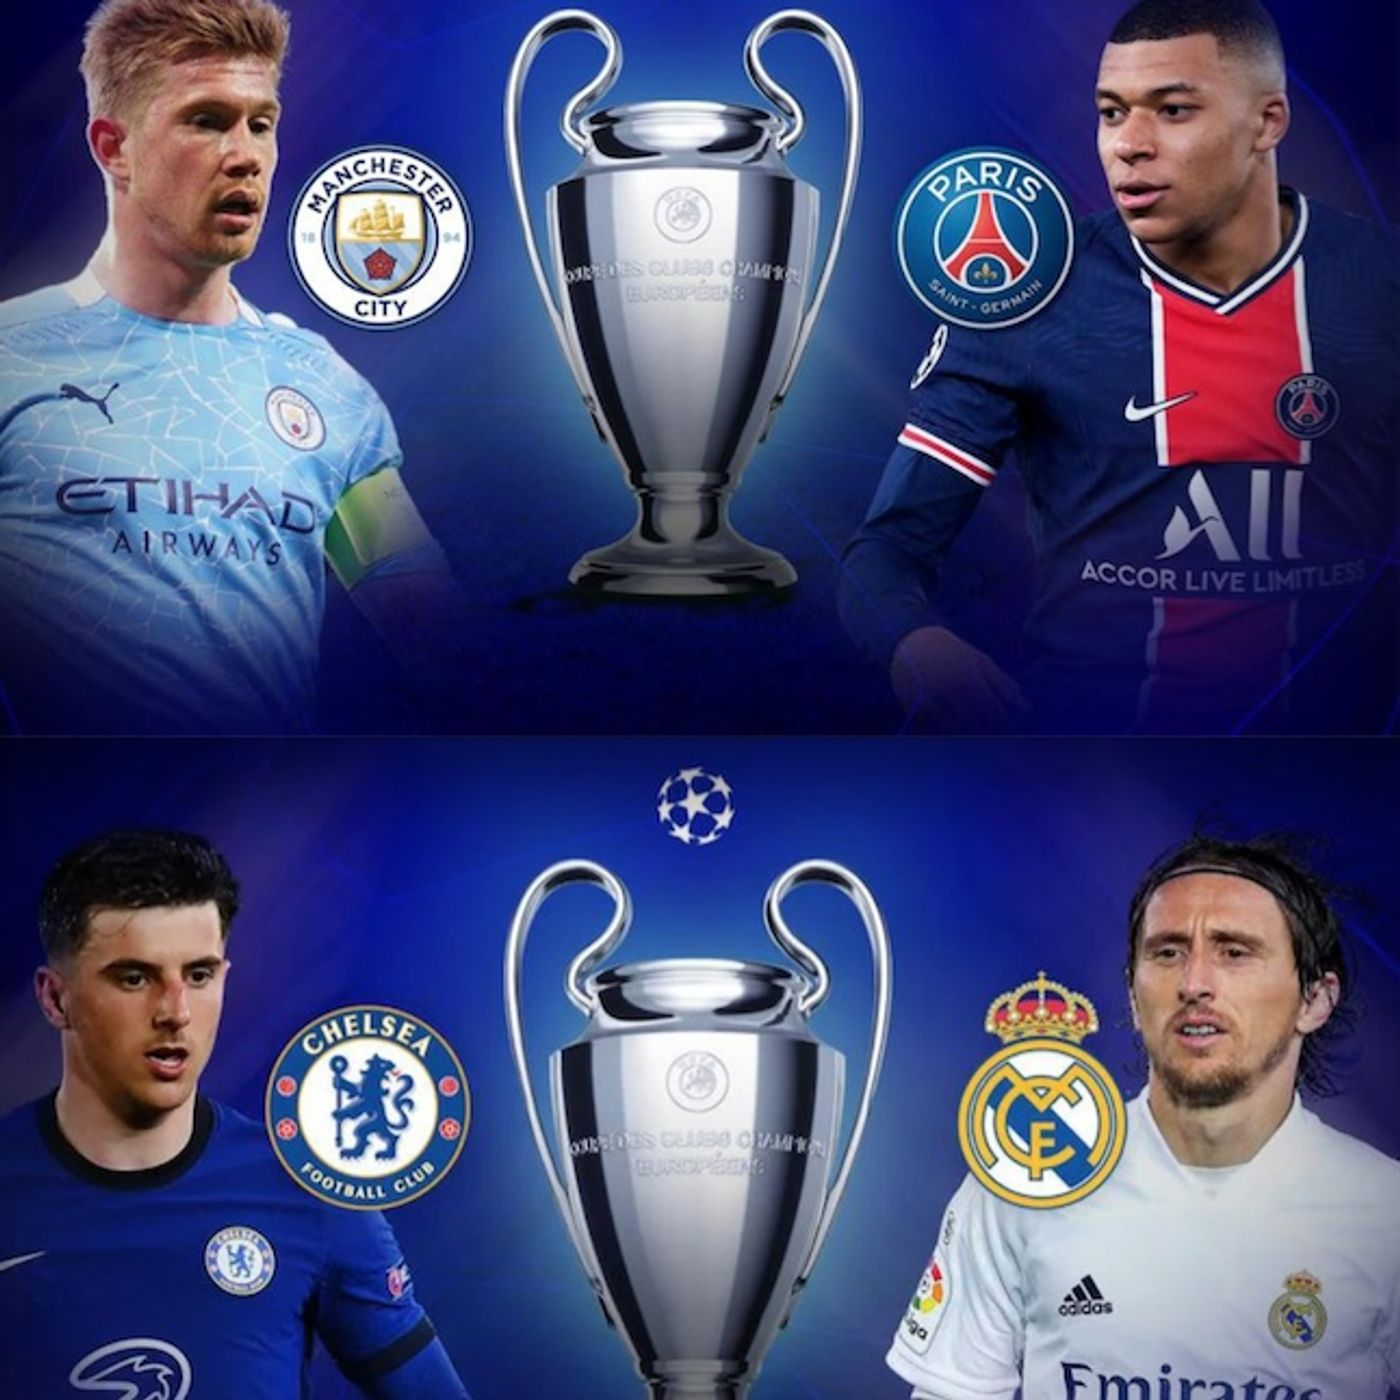 UEFA Champions League & Europa League Semi-finals: Betting Previews & Official Plays for the 2nd Legs (05/04 - 05/06)